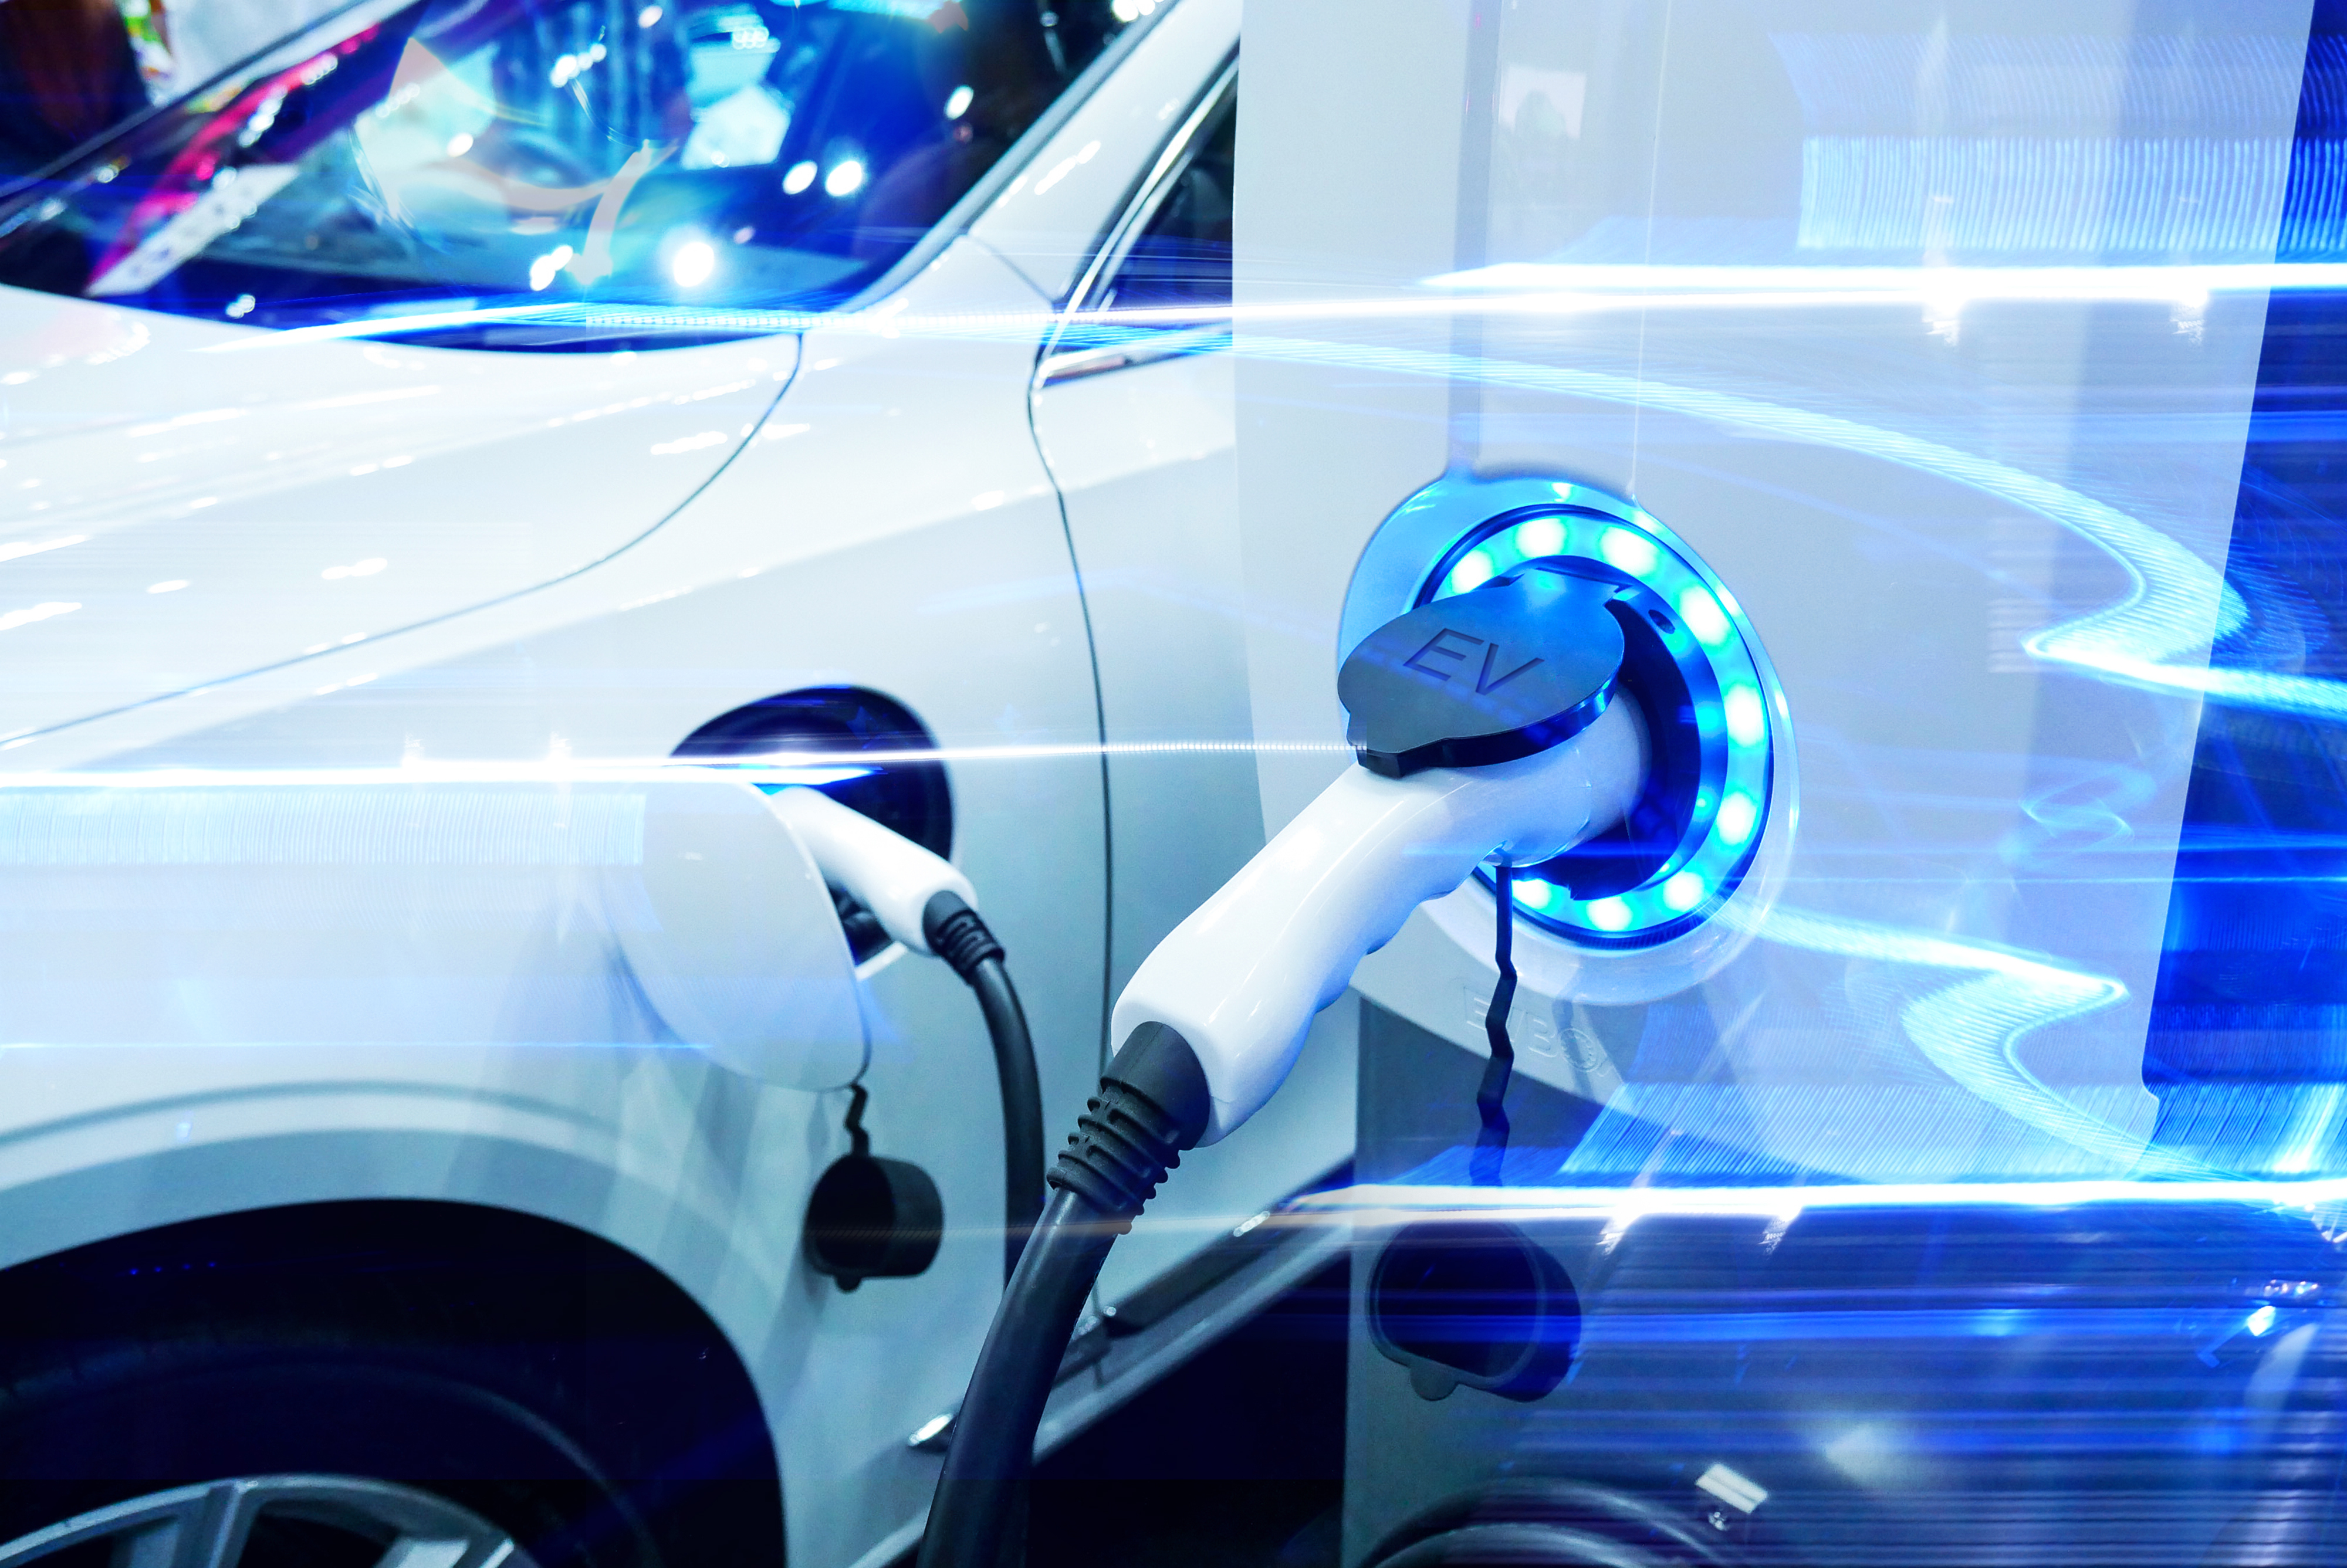 You Ll Probably Need Just 300 Seconds To Fully Charge An Ev By 2021 Bp Says Acapmag The Voice Of Downstream Petroleum